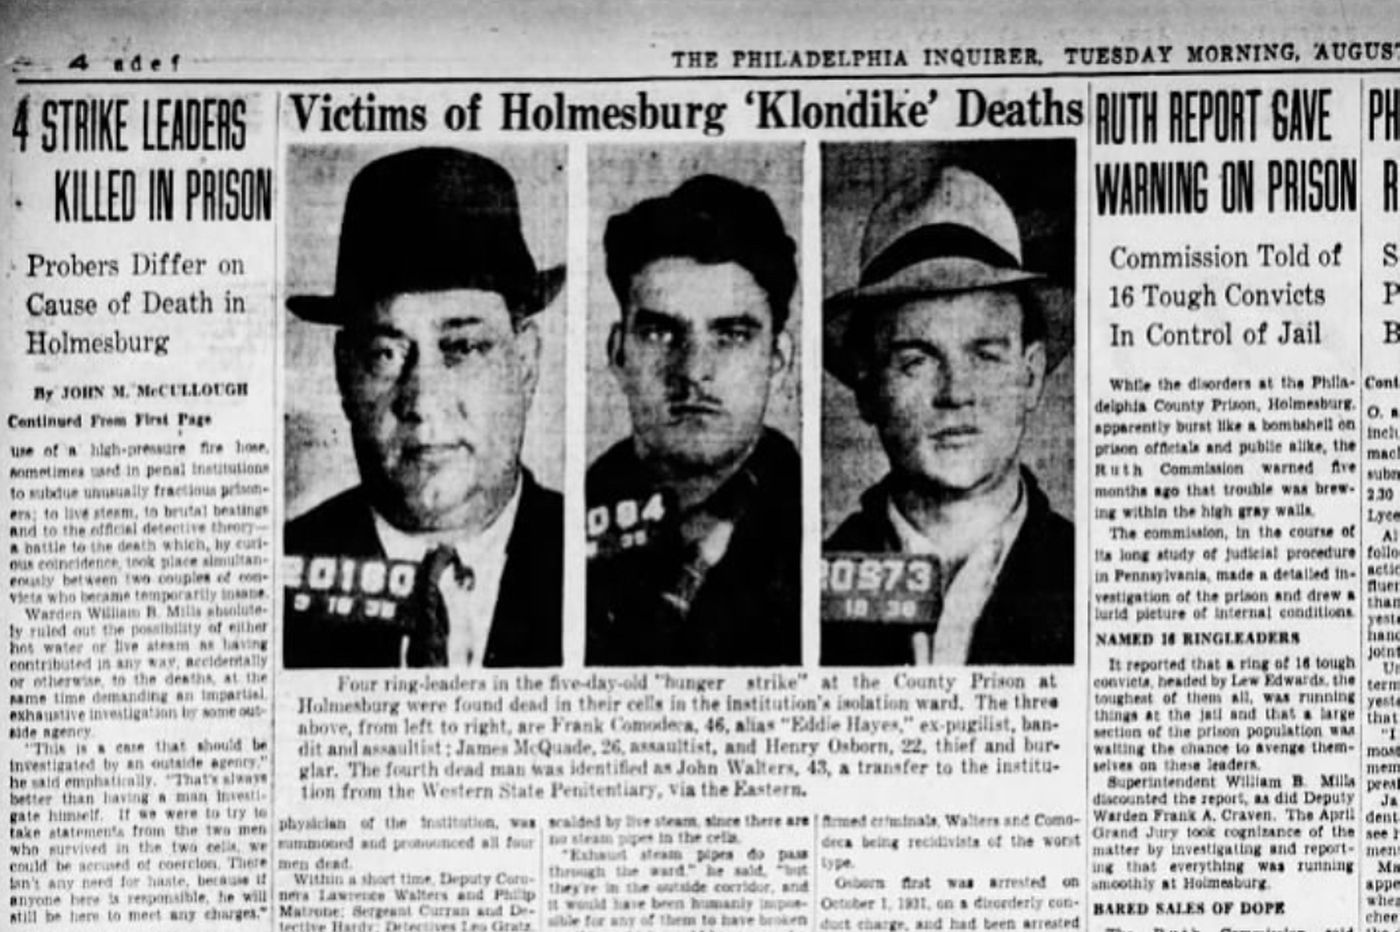 81 years ago, 4 inmates were 'baked' to death in a Philly jail. This summer, 1,000 are still locked up without AC.